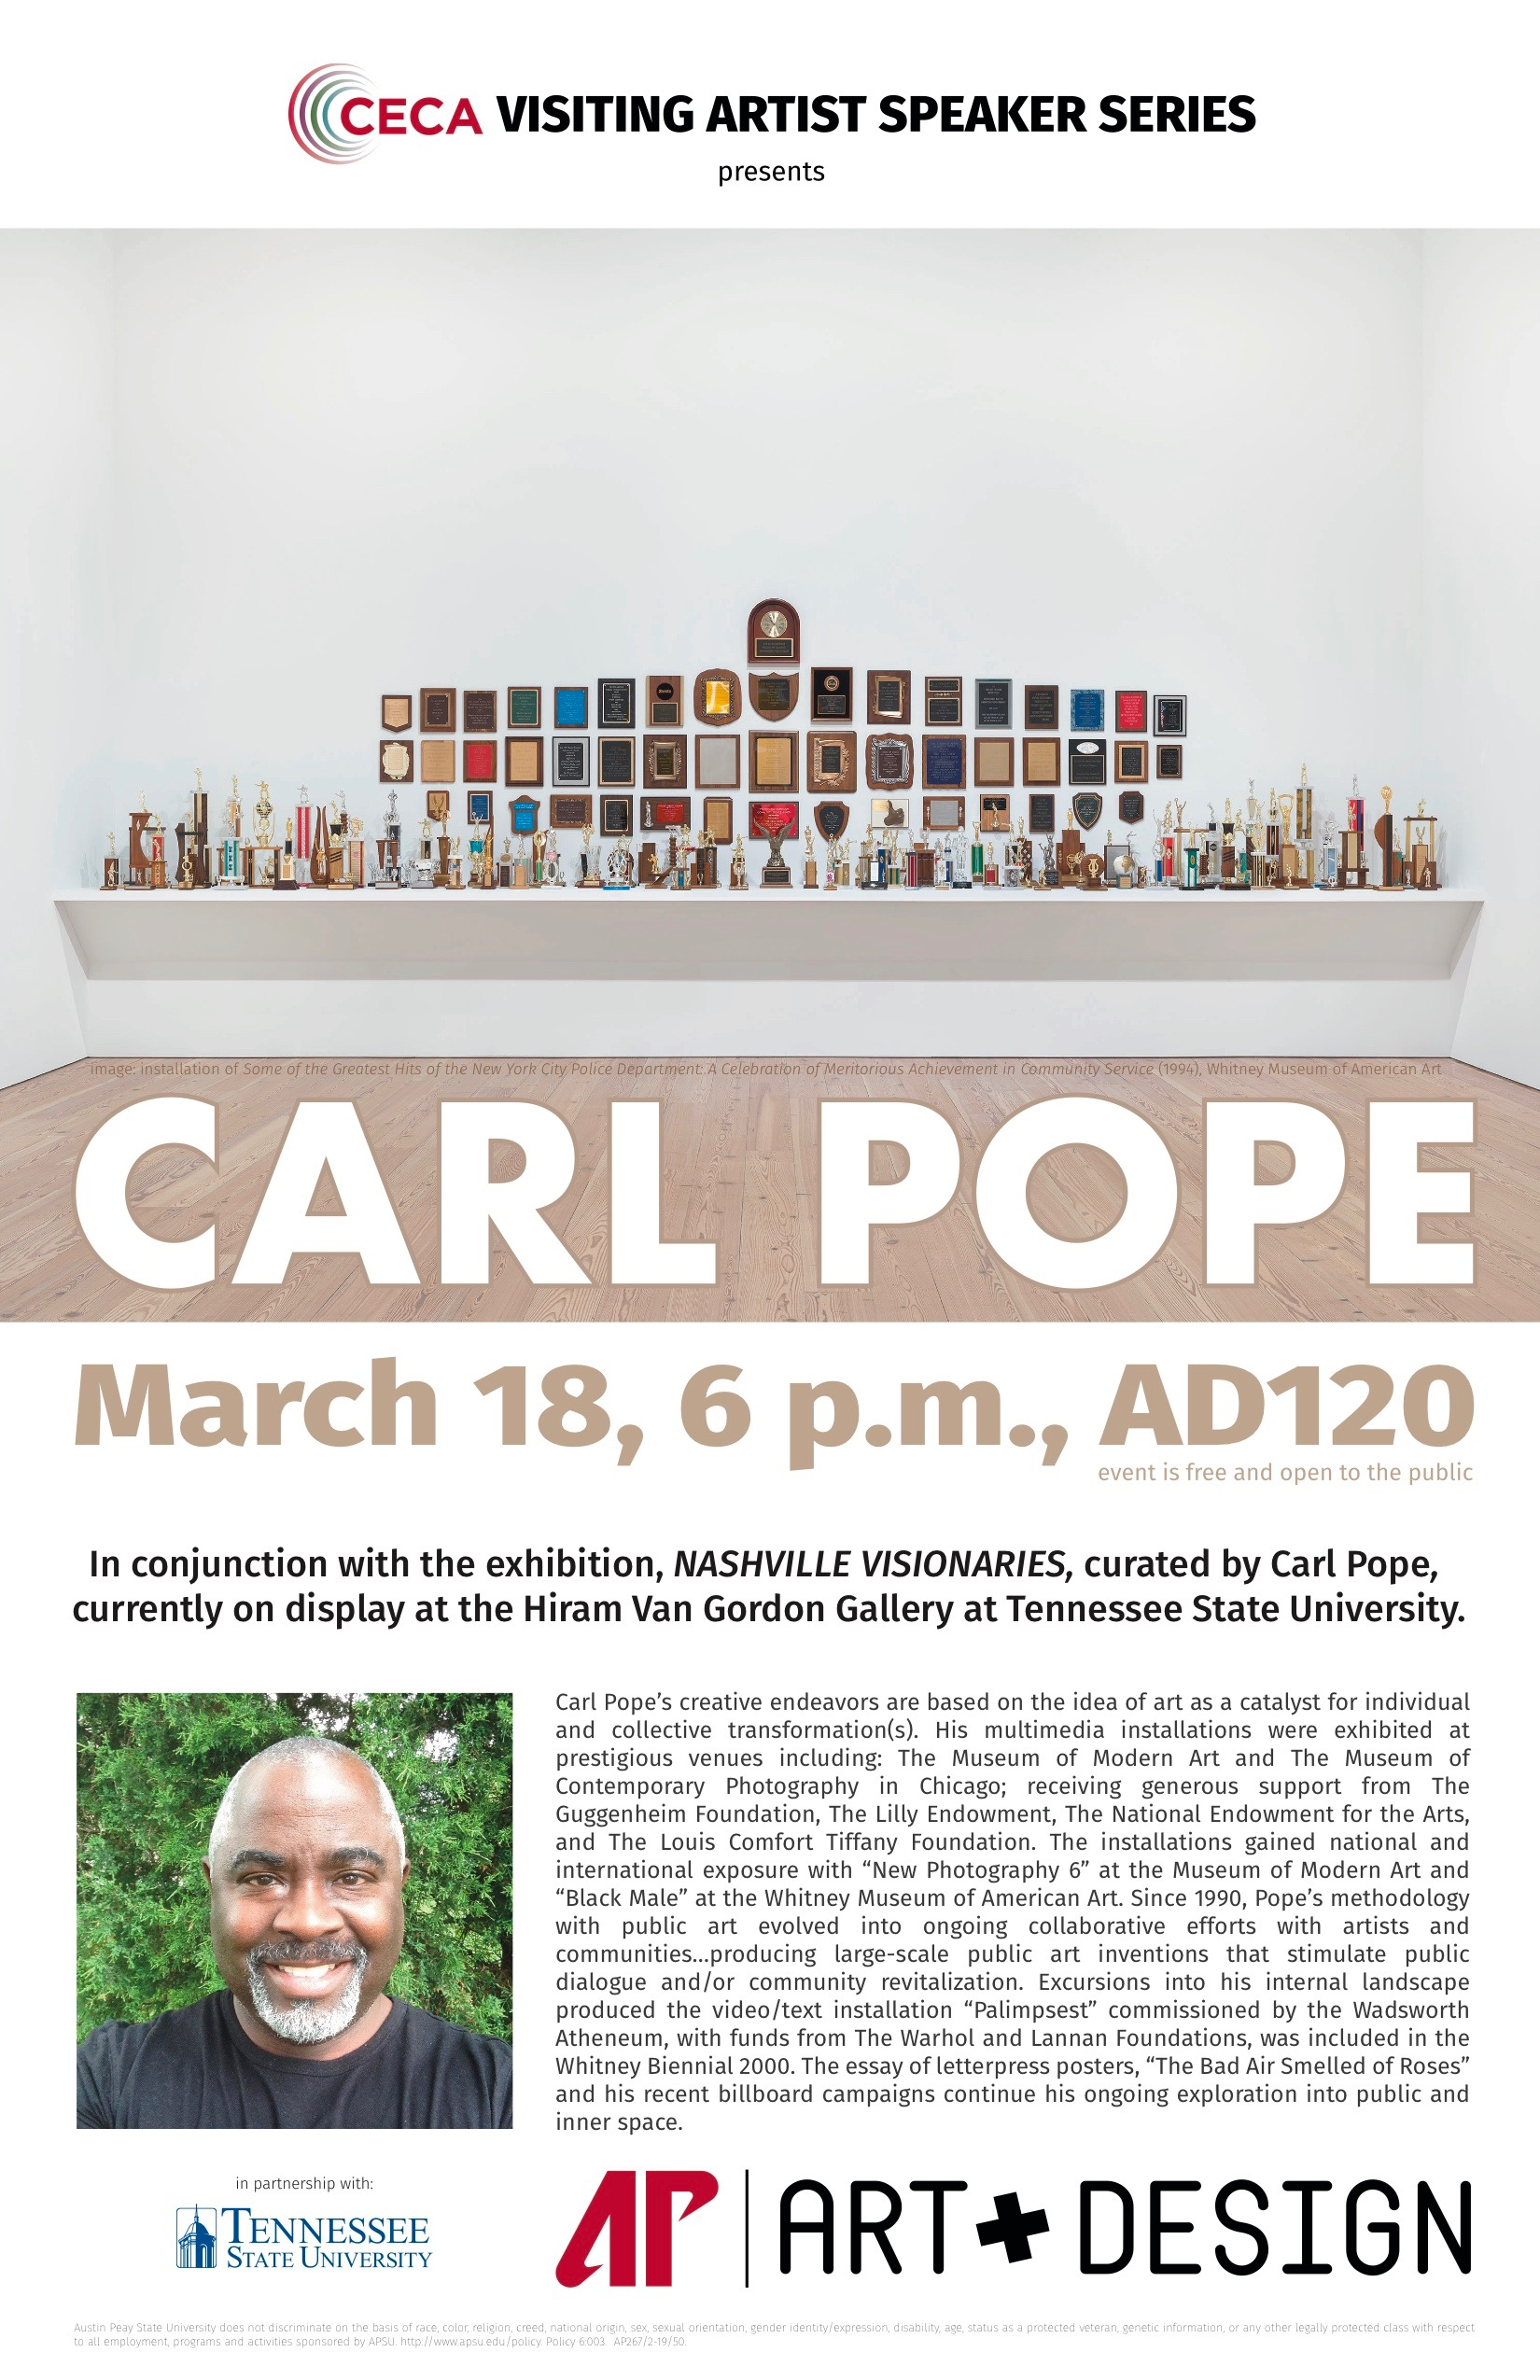 The Department of Art + Design, with support from The Center of Excellence for the Creative Arts, and in partnership with Tennessee State University, is pleased to welcome artist, Carl Pope, to Austin Peay State University.